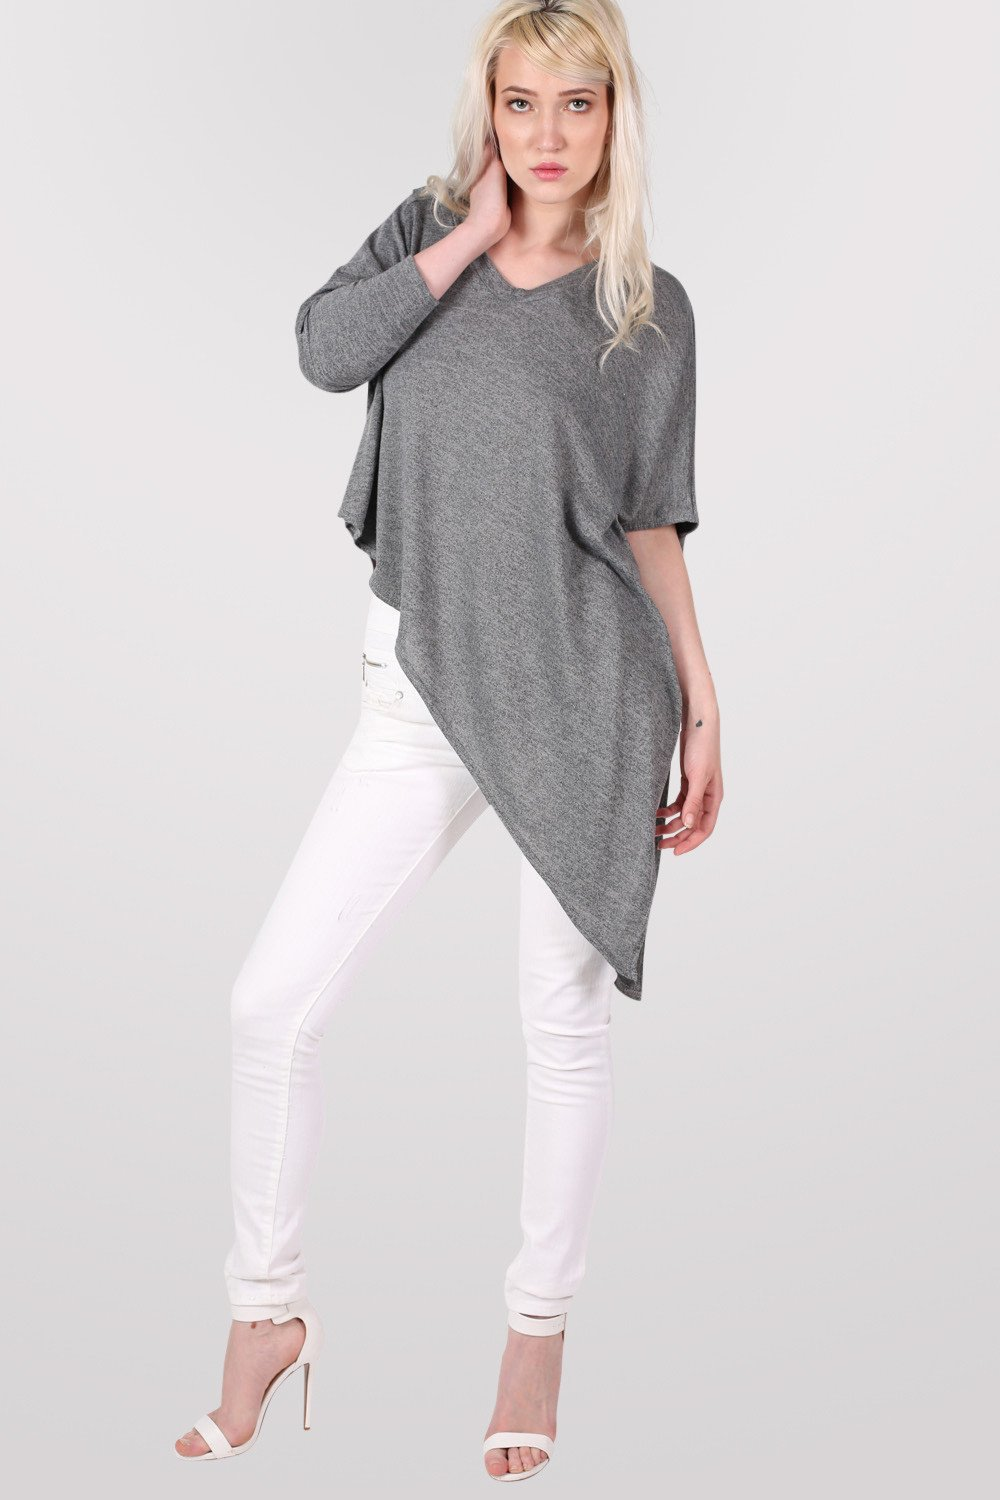 Gracie V Neck Oversized Asymmetric Top in Grey MODEL FRONT